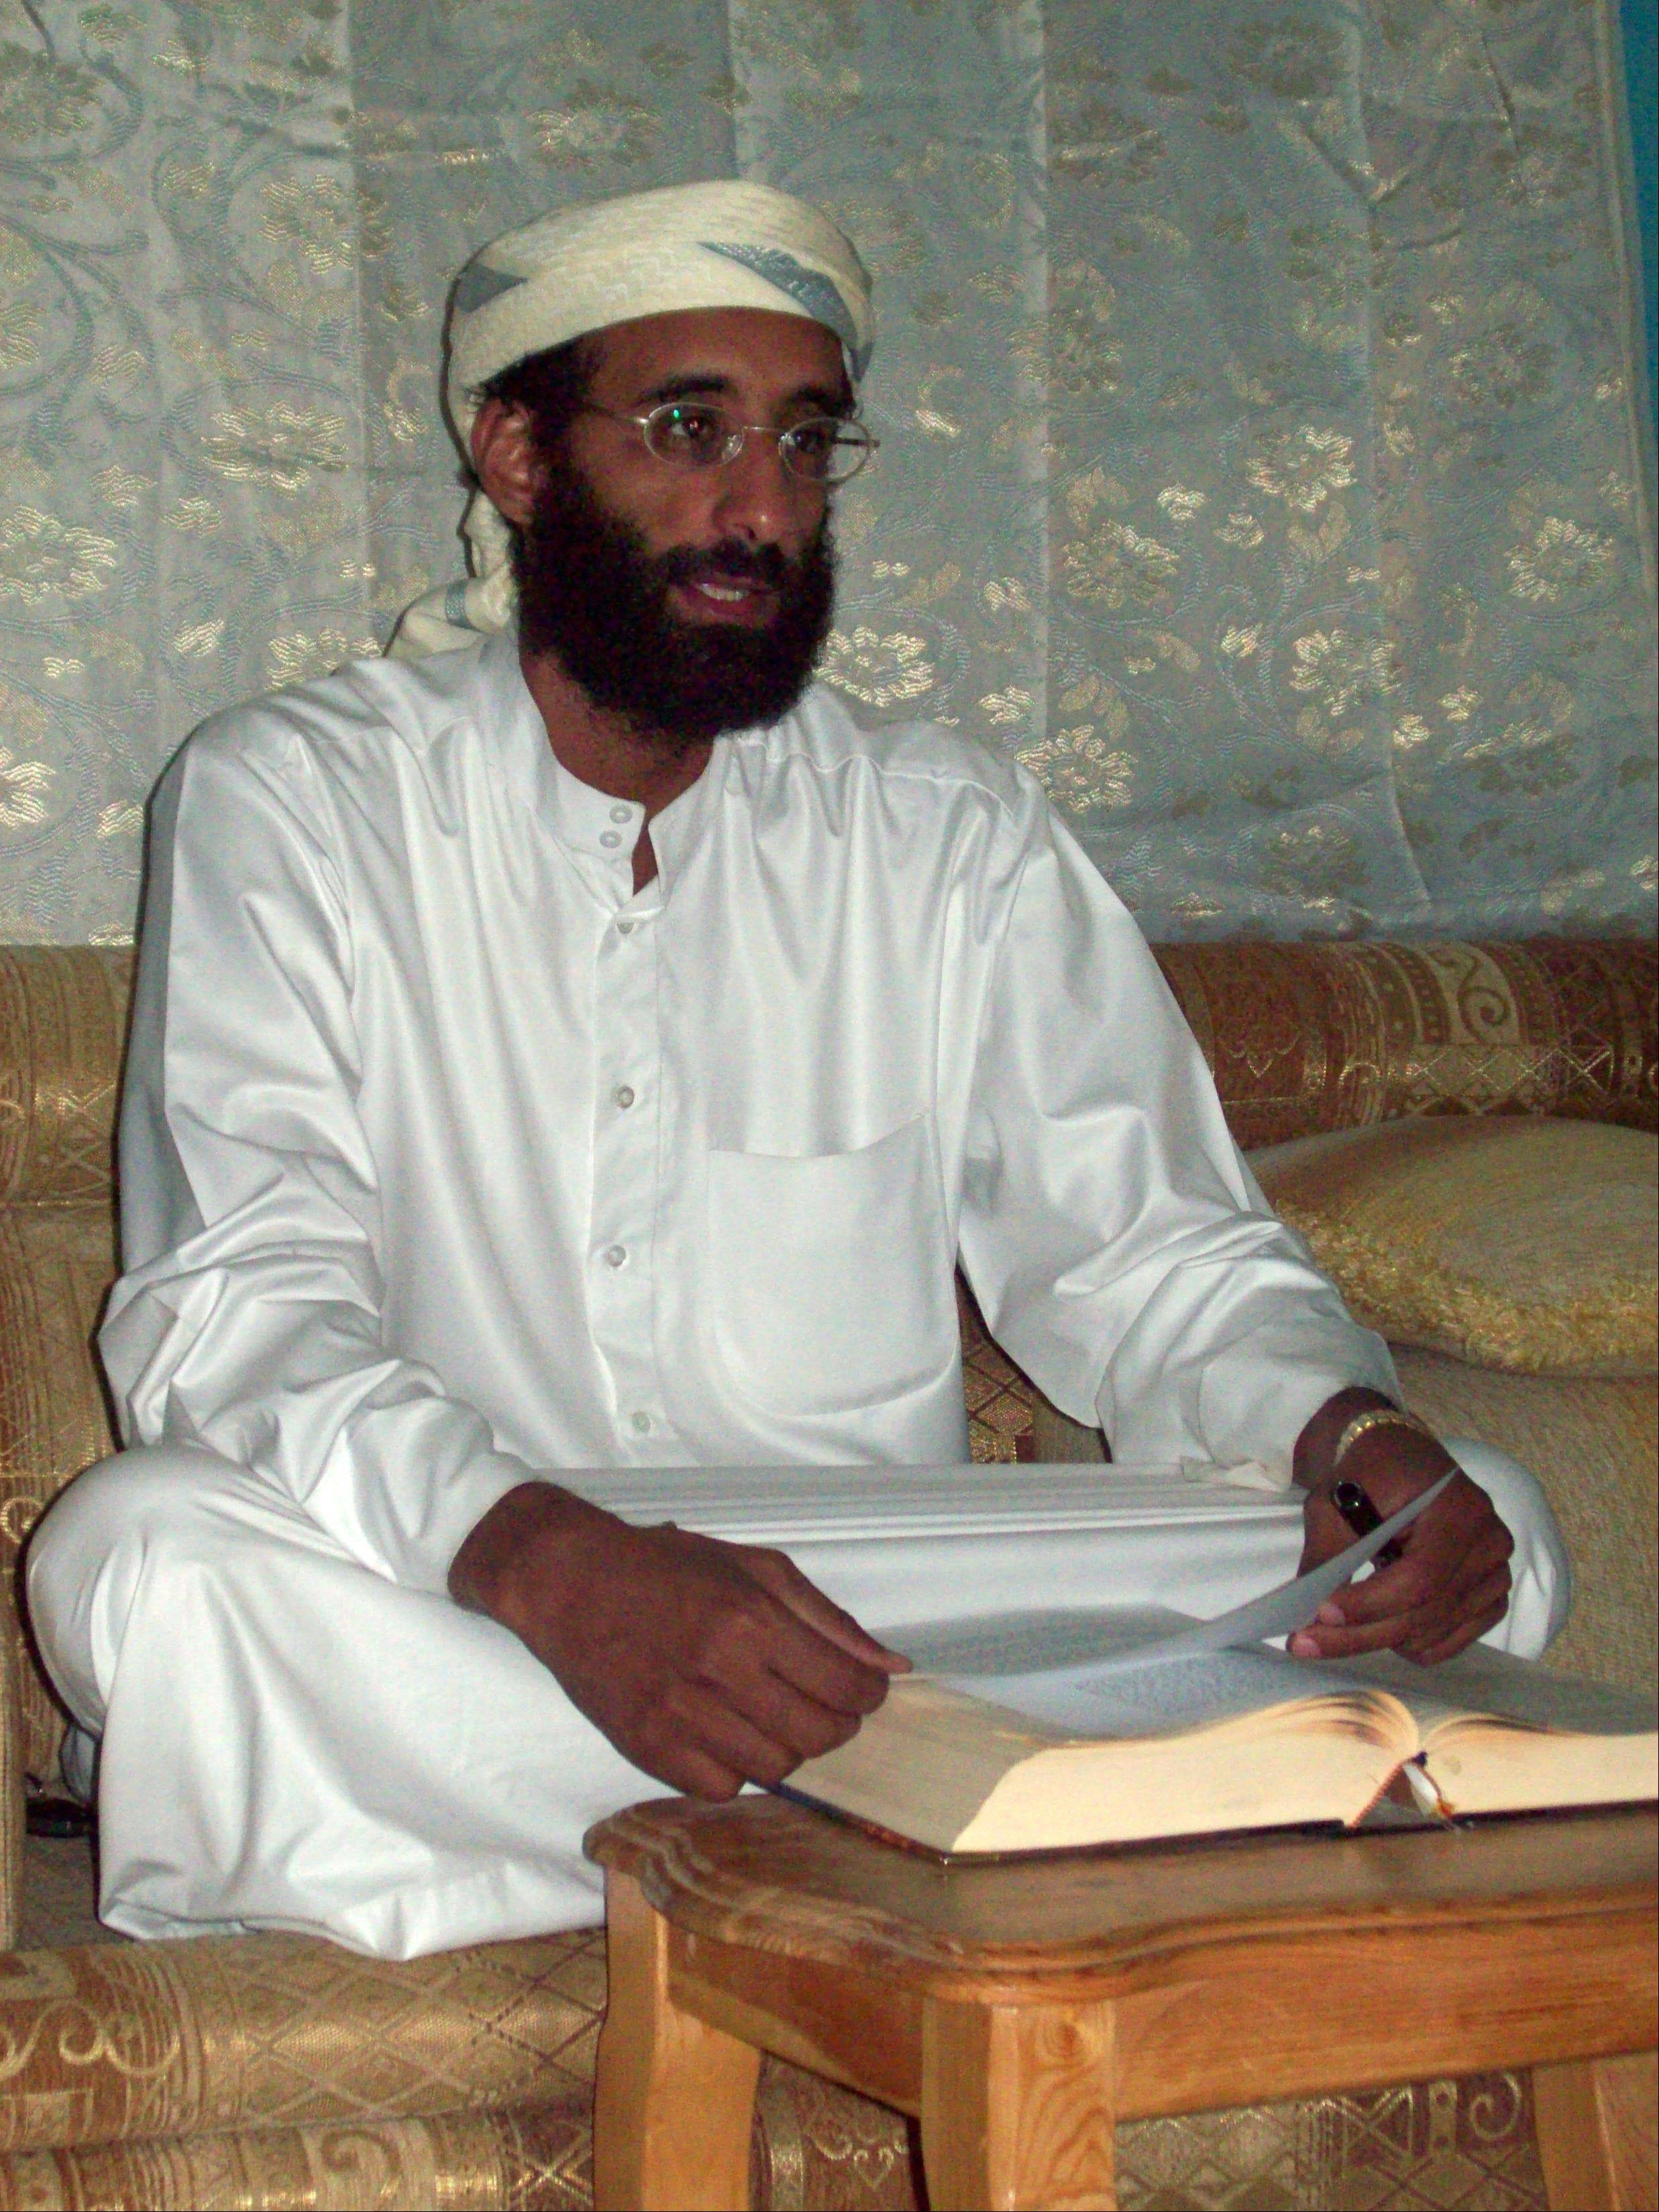 A 2011 drone strike in Yemen killed Anwar al-Awlaki, a U.S. citizens. A Justice Department document says it is legal for the government to kill U.S. citizens abroad if it believes they are senior al-Qaida leaders continually engaged in operations aimed at killing Americans.